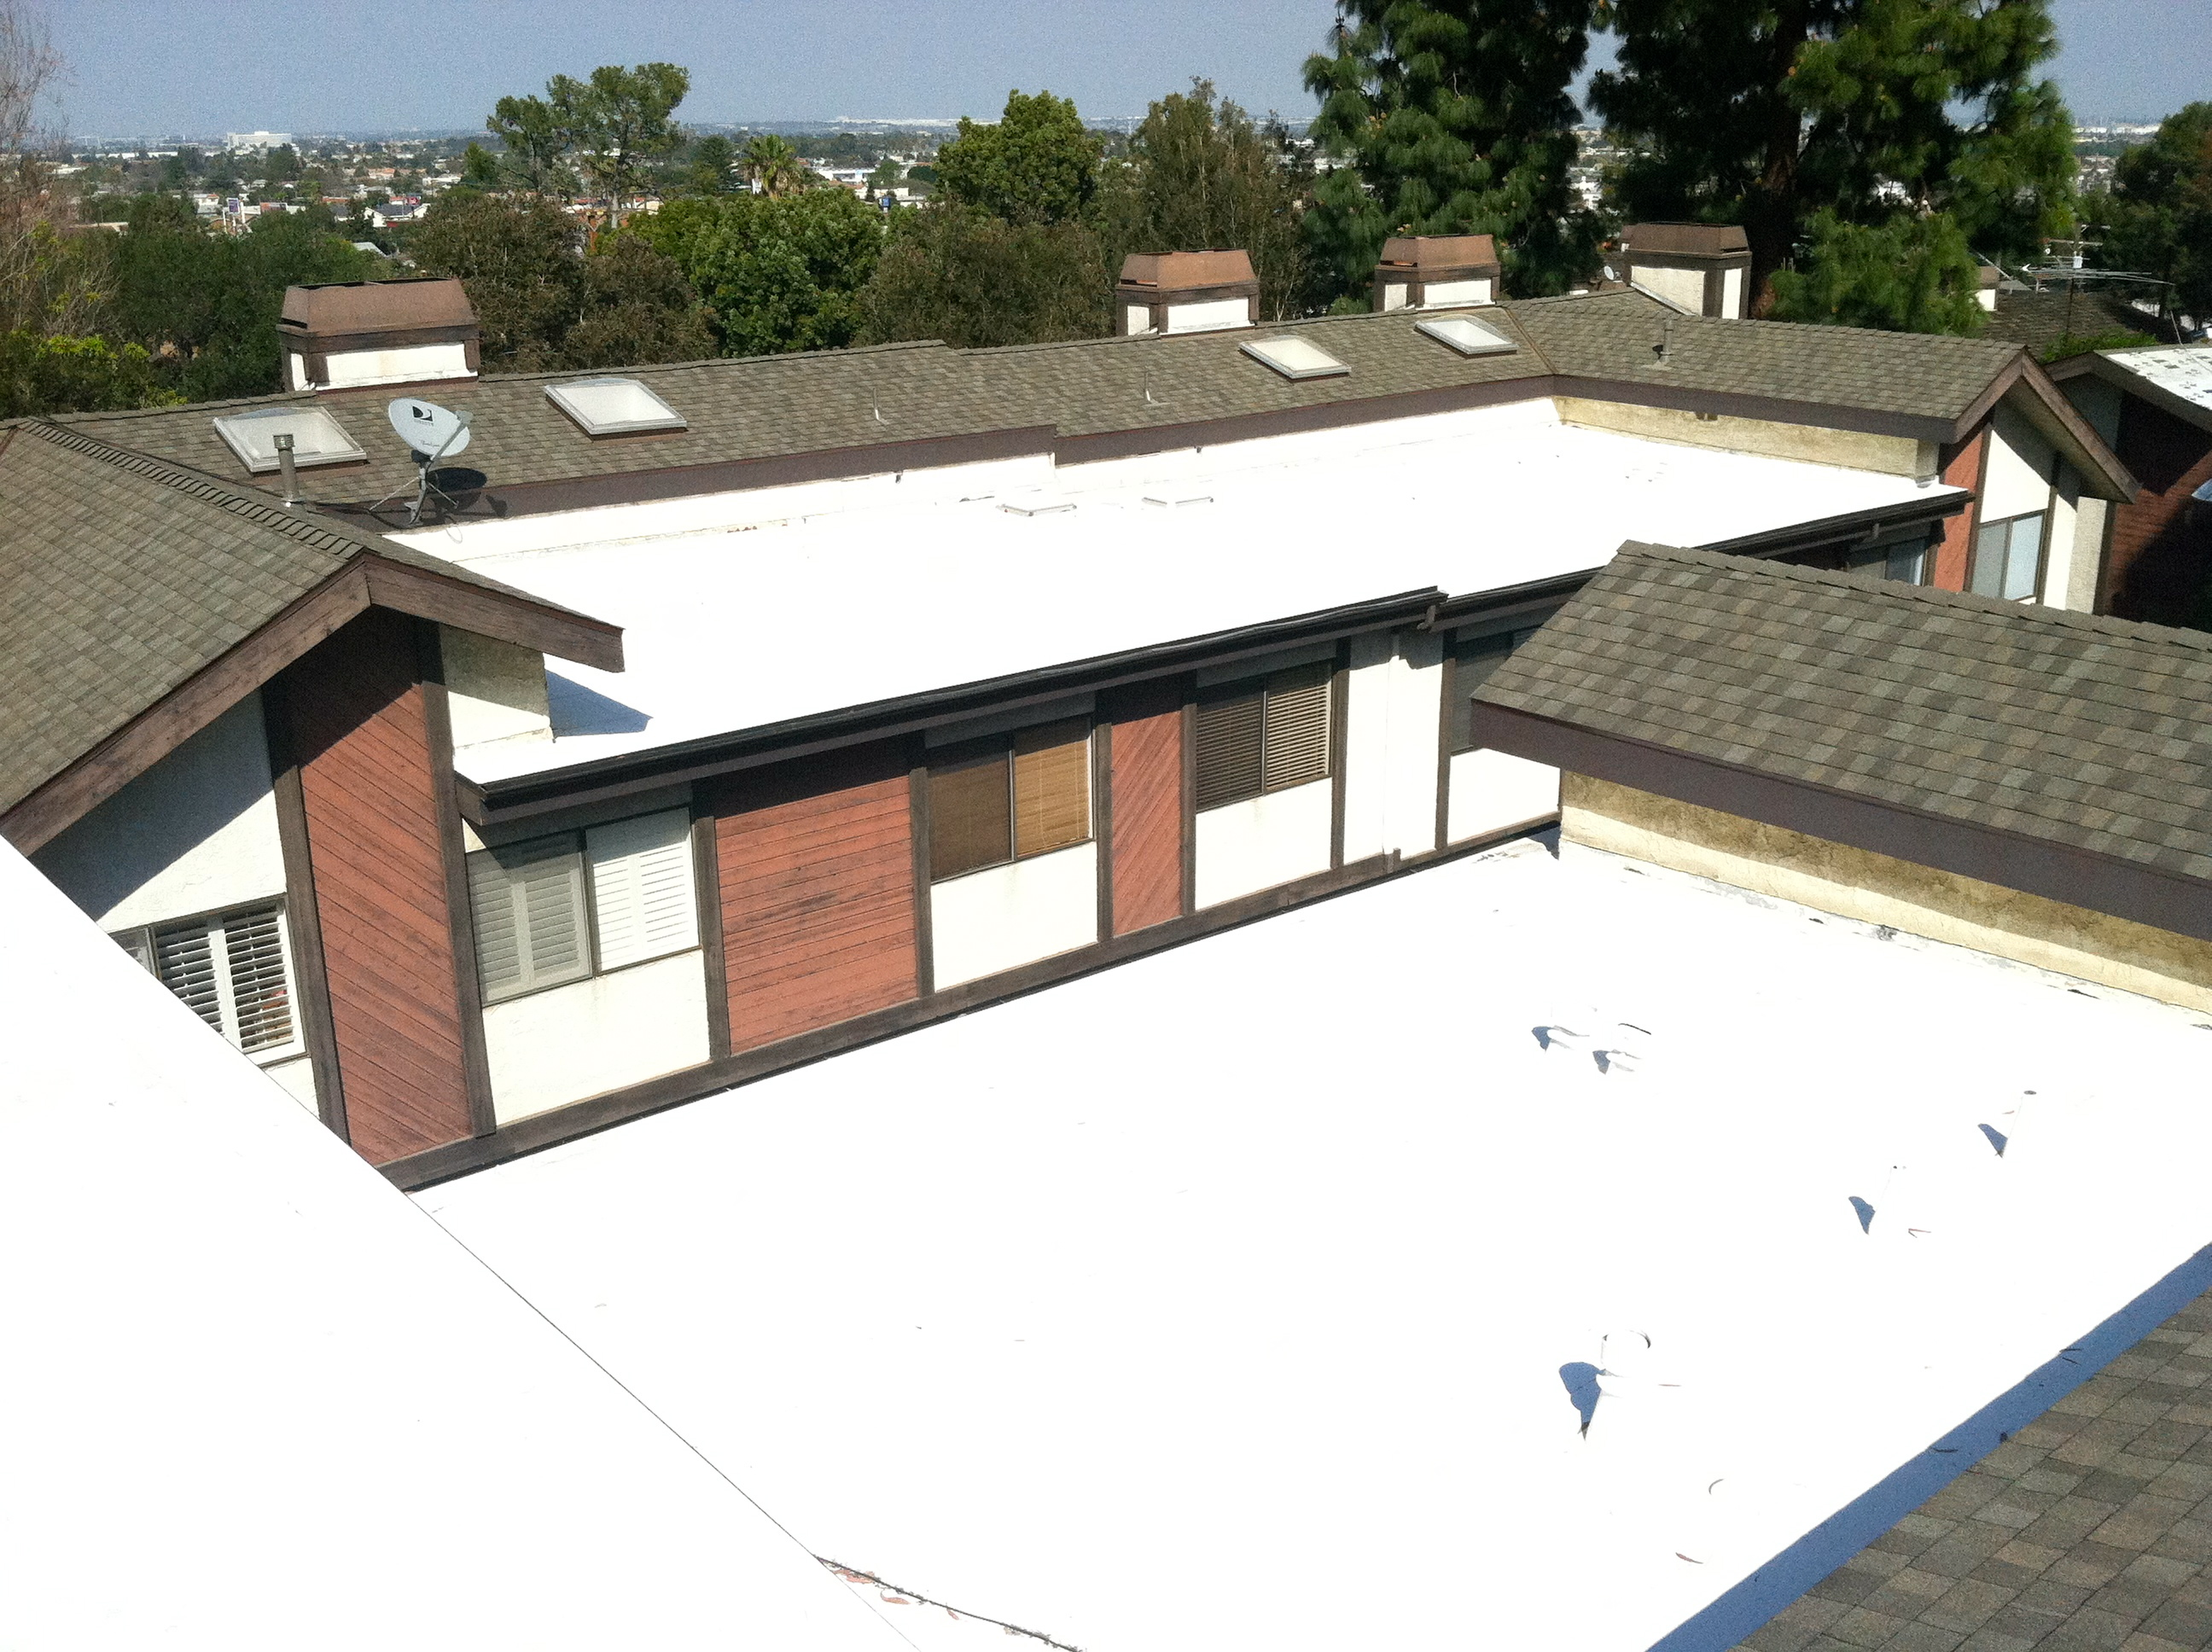 Chandler S Roofing Joins Cacm While Predicting Growth In